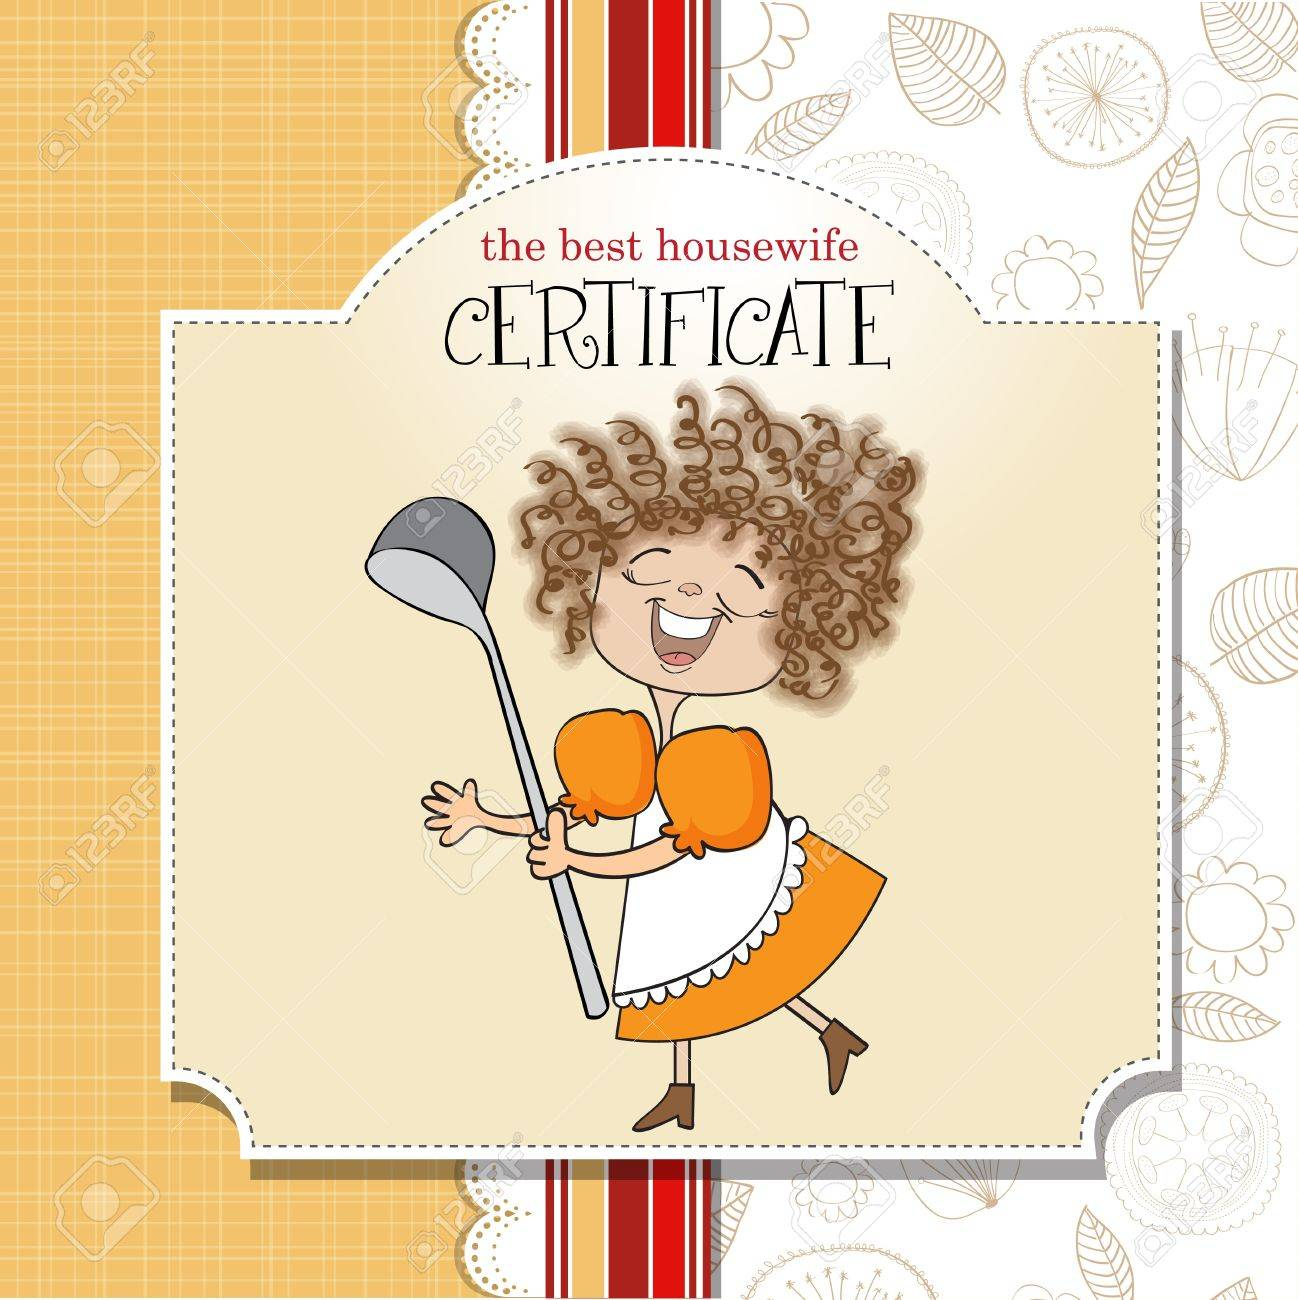 the best wifehouse certificate Stock Vector - 13423265